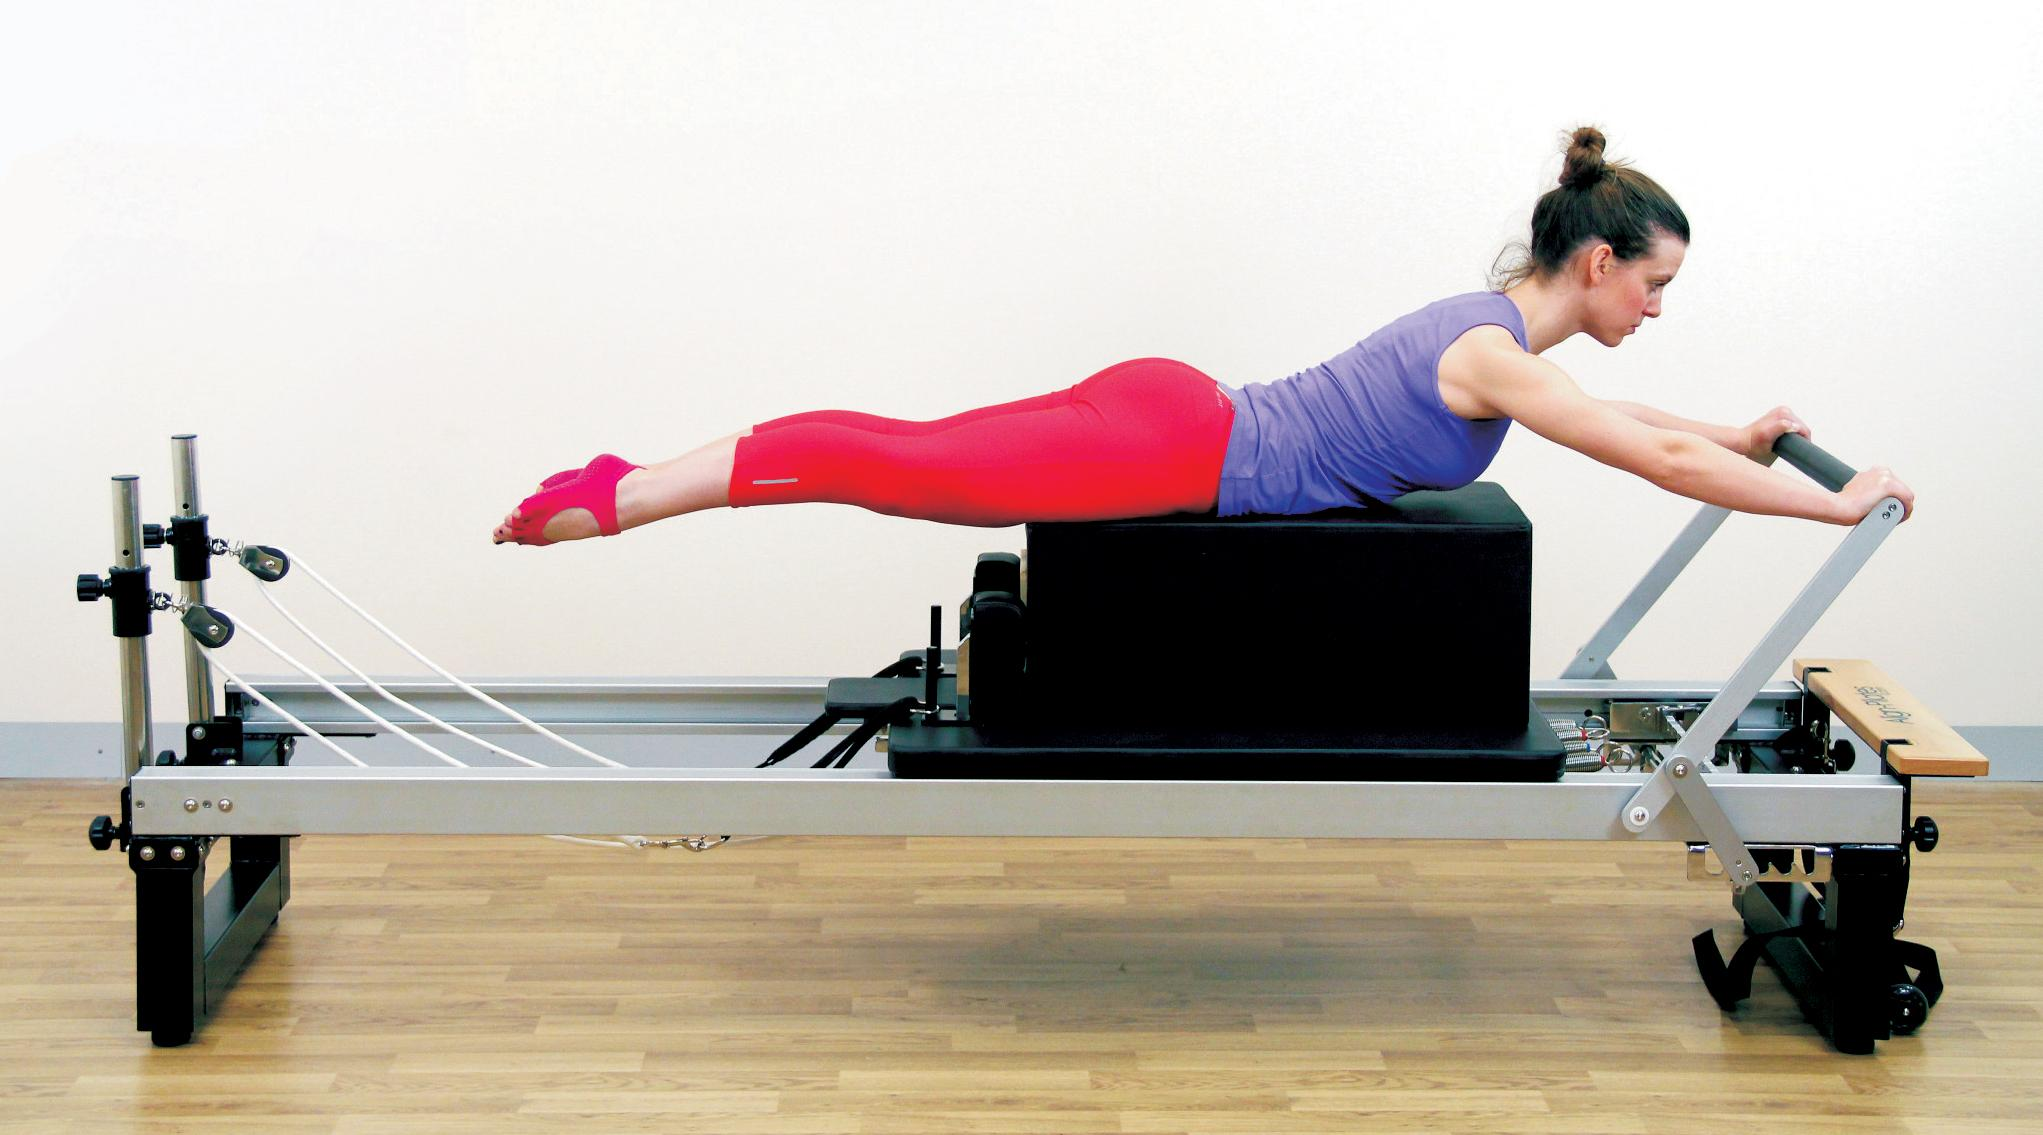 Semprose Pilates and Fitness - pilates equipment being used by the lady